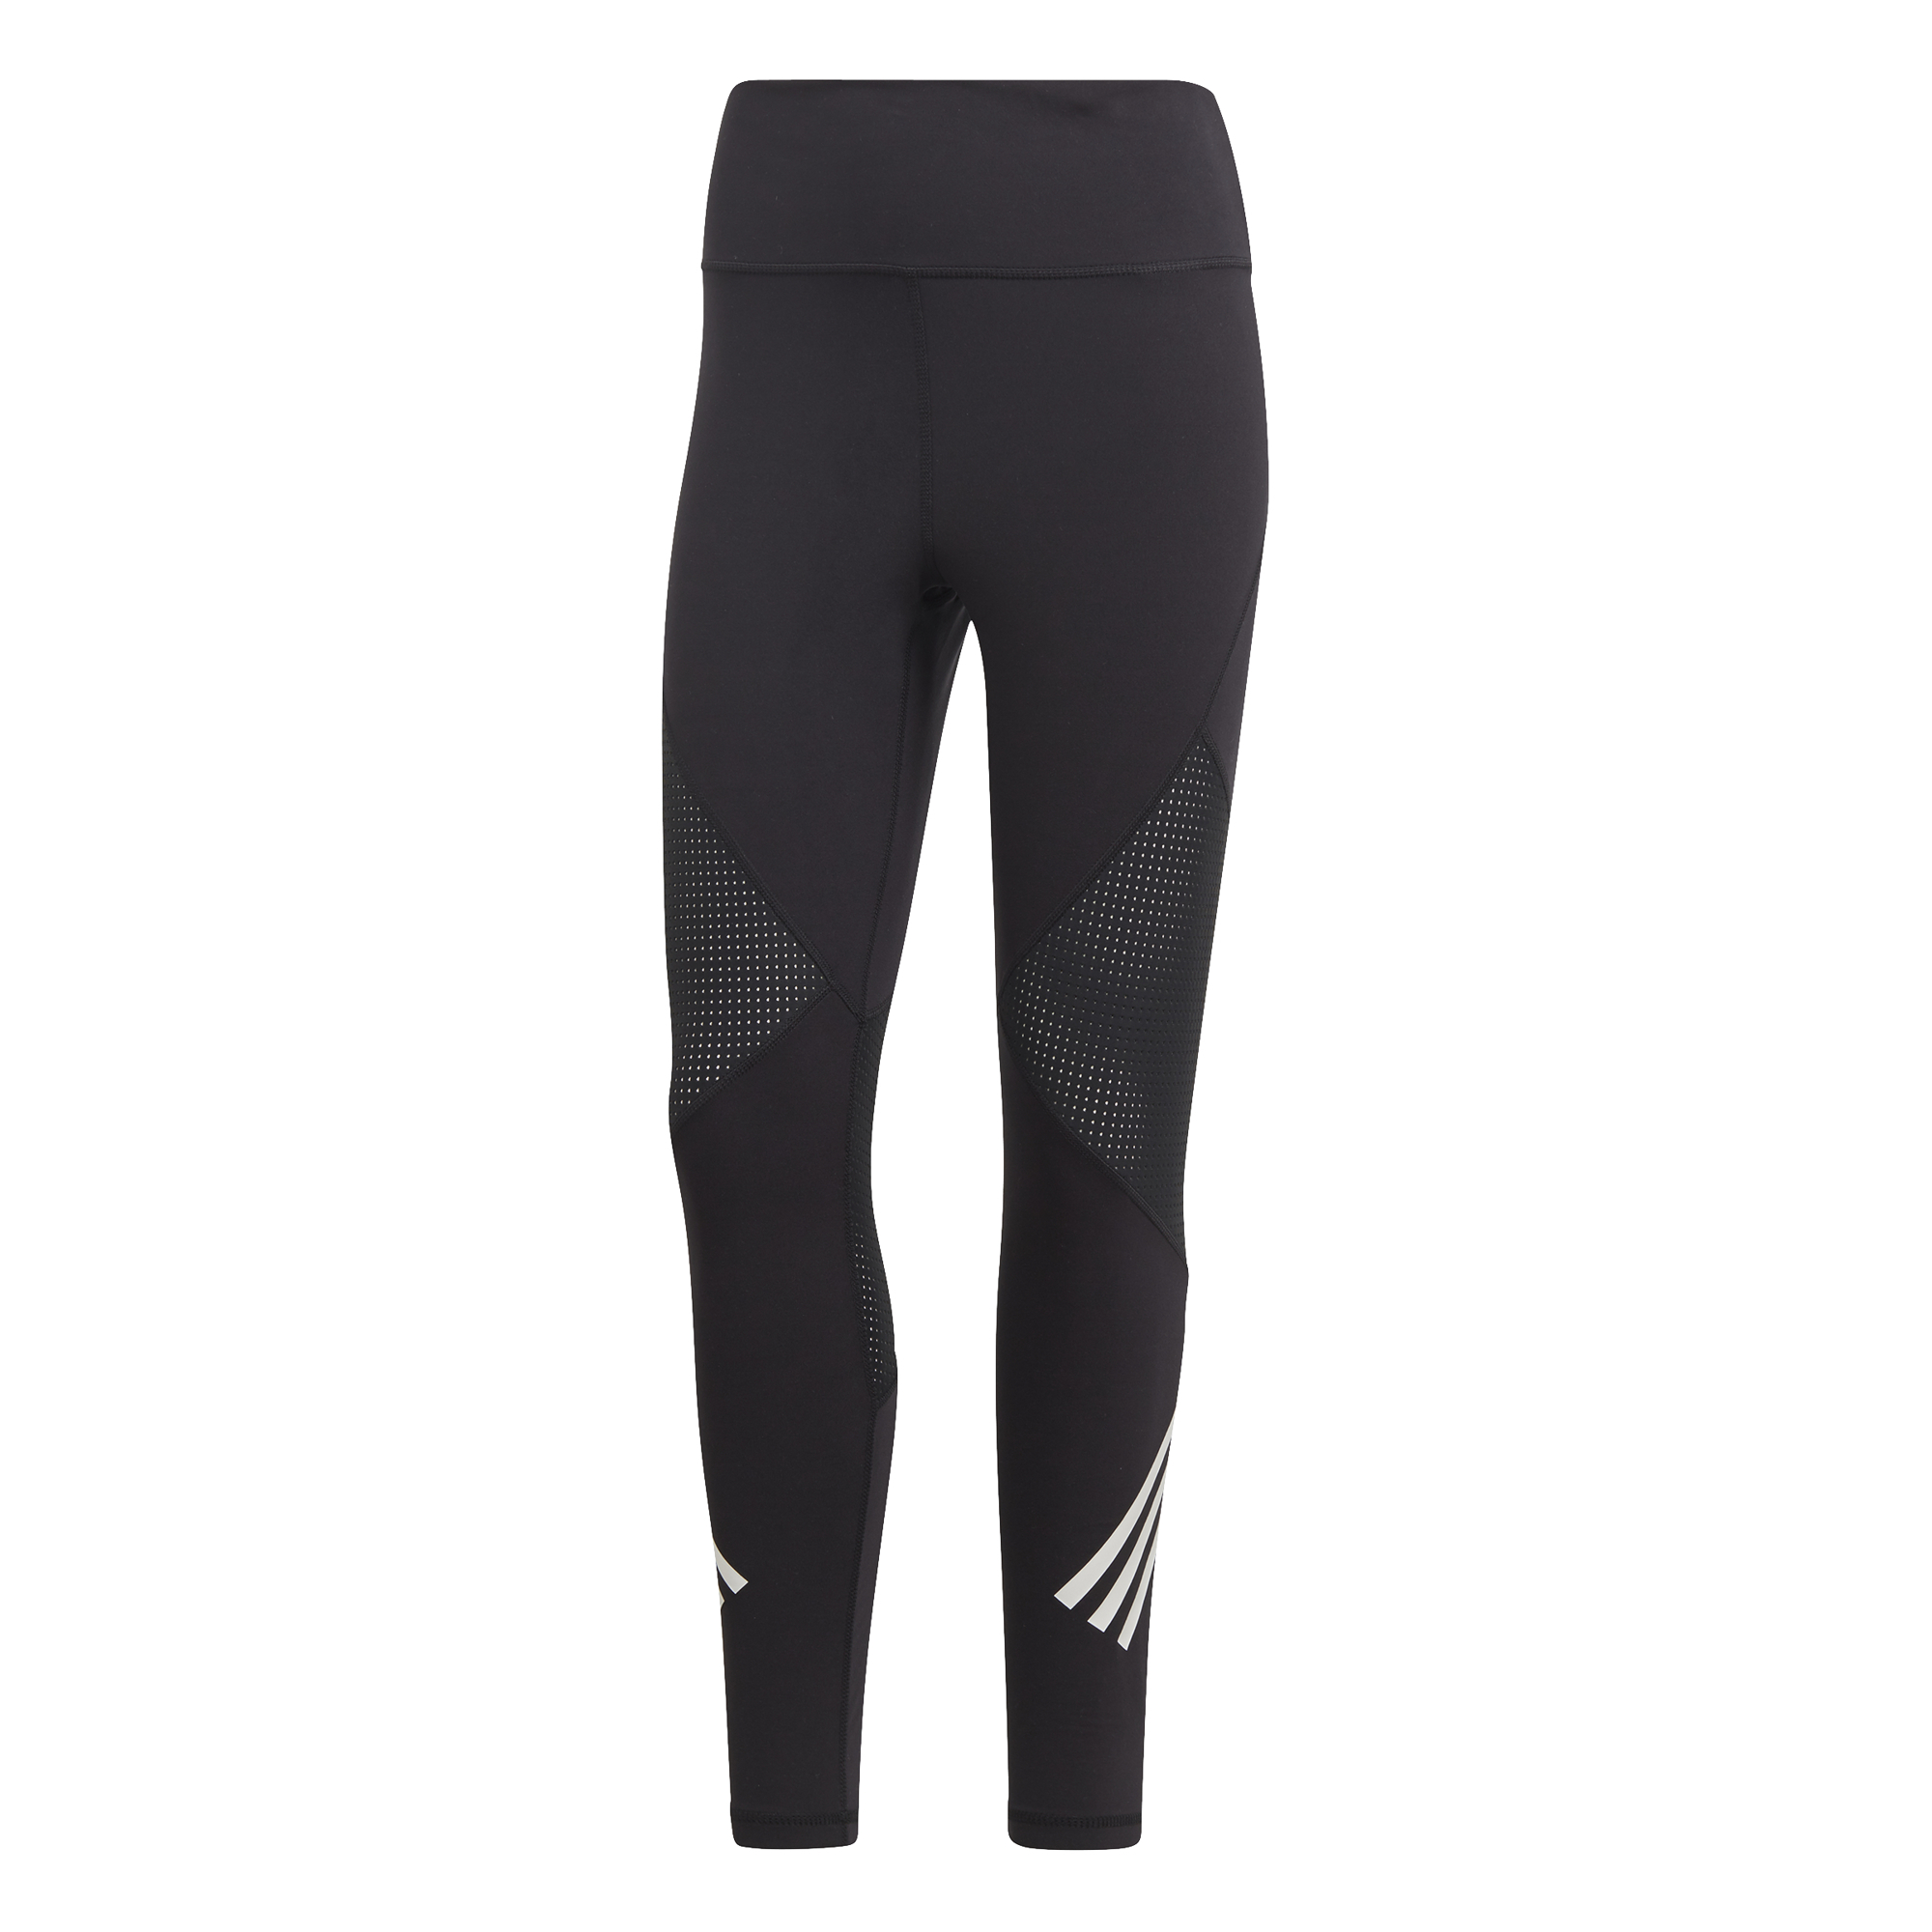 d1ec4ab1b6dc3f Wiggle | adidas Women's Believe This High Rise 7/8 Strength 3s Tig | Tights